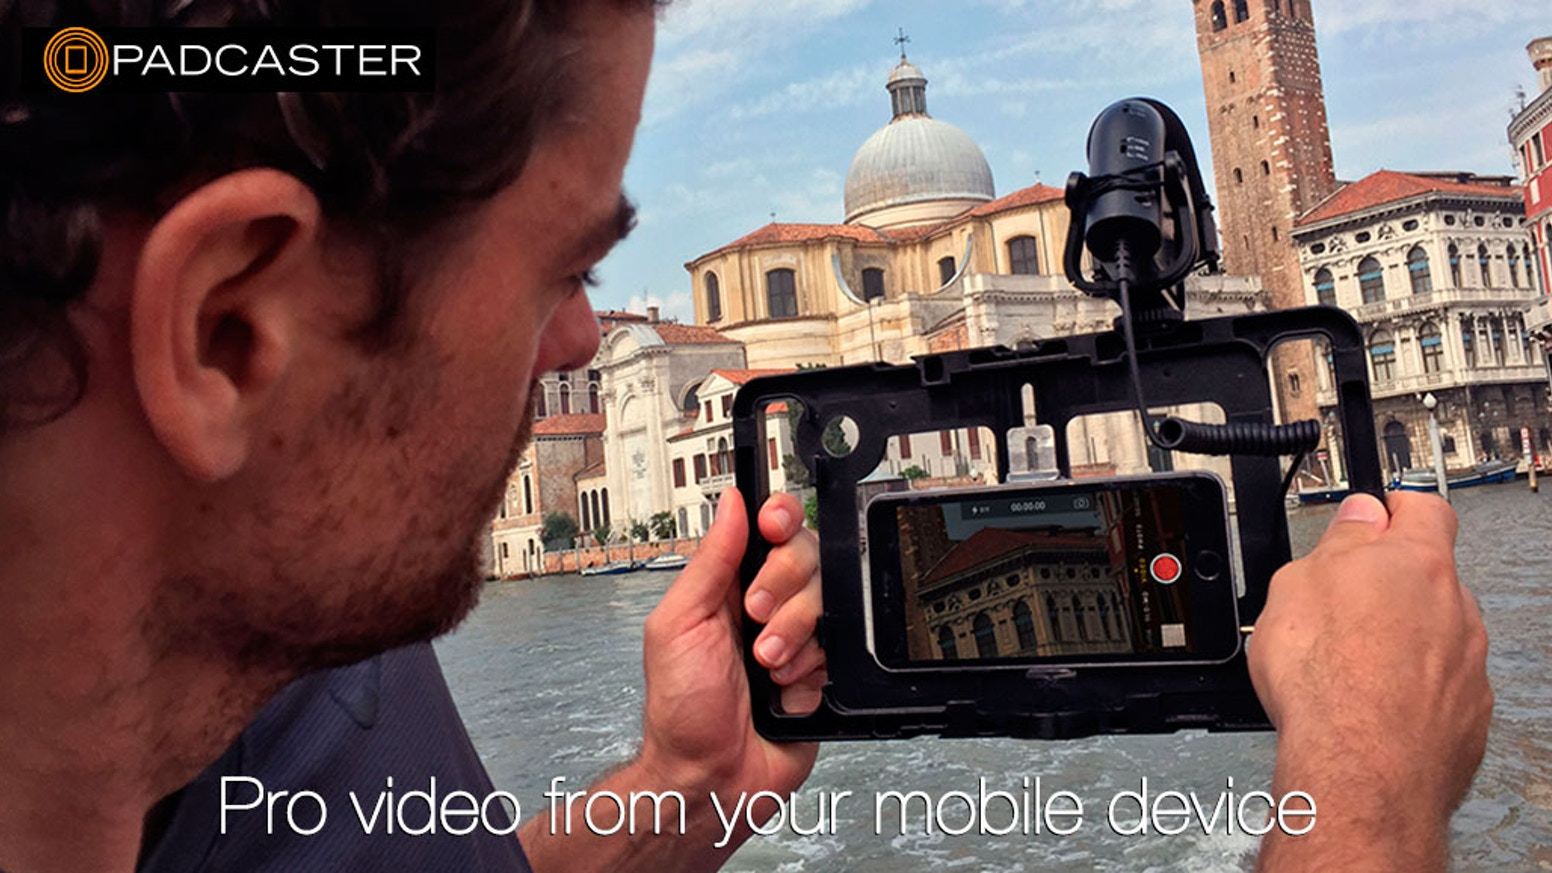 Padcaster VERSE is the first mobile-media case built for iPhone, Android and your favorite tablet, too.